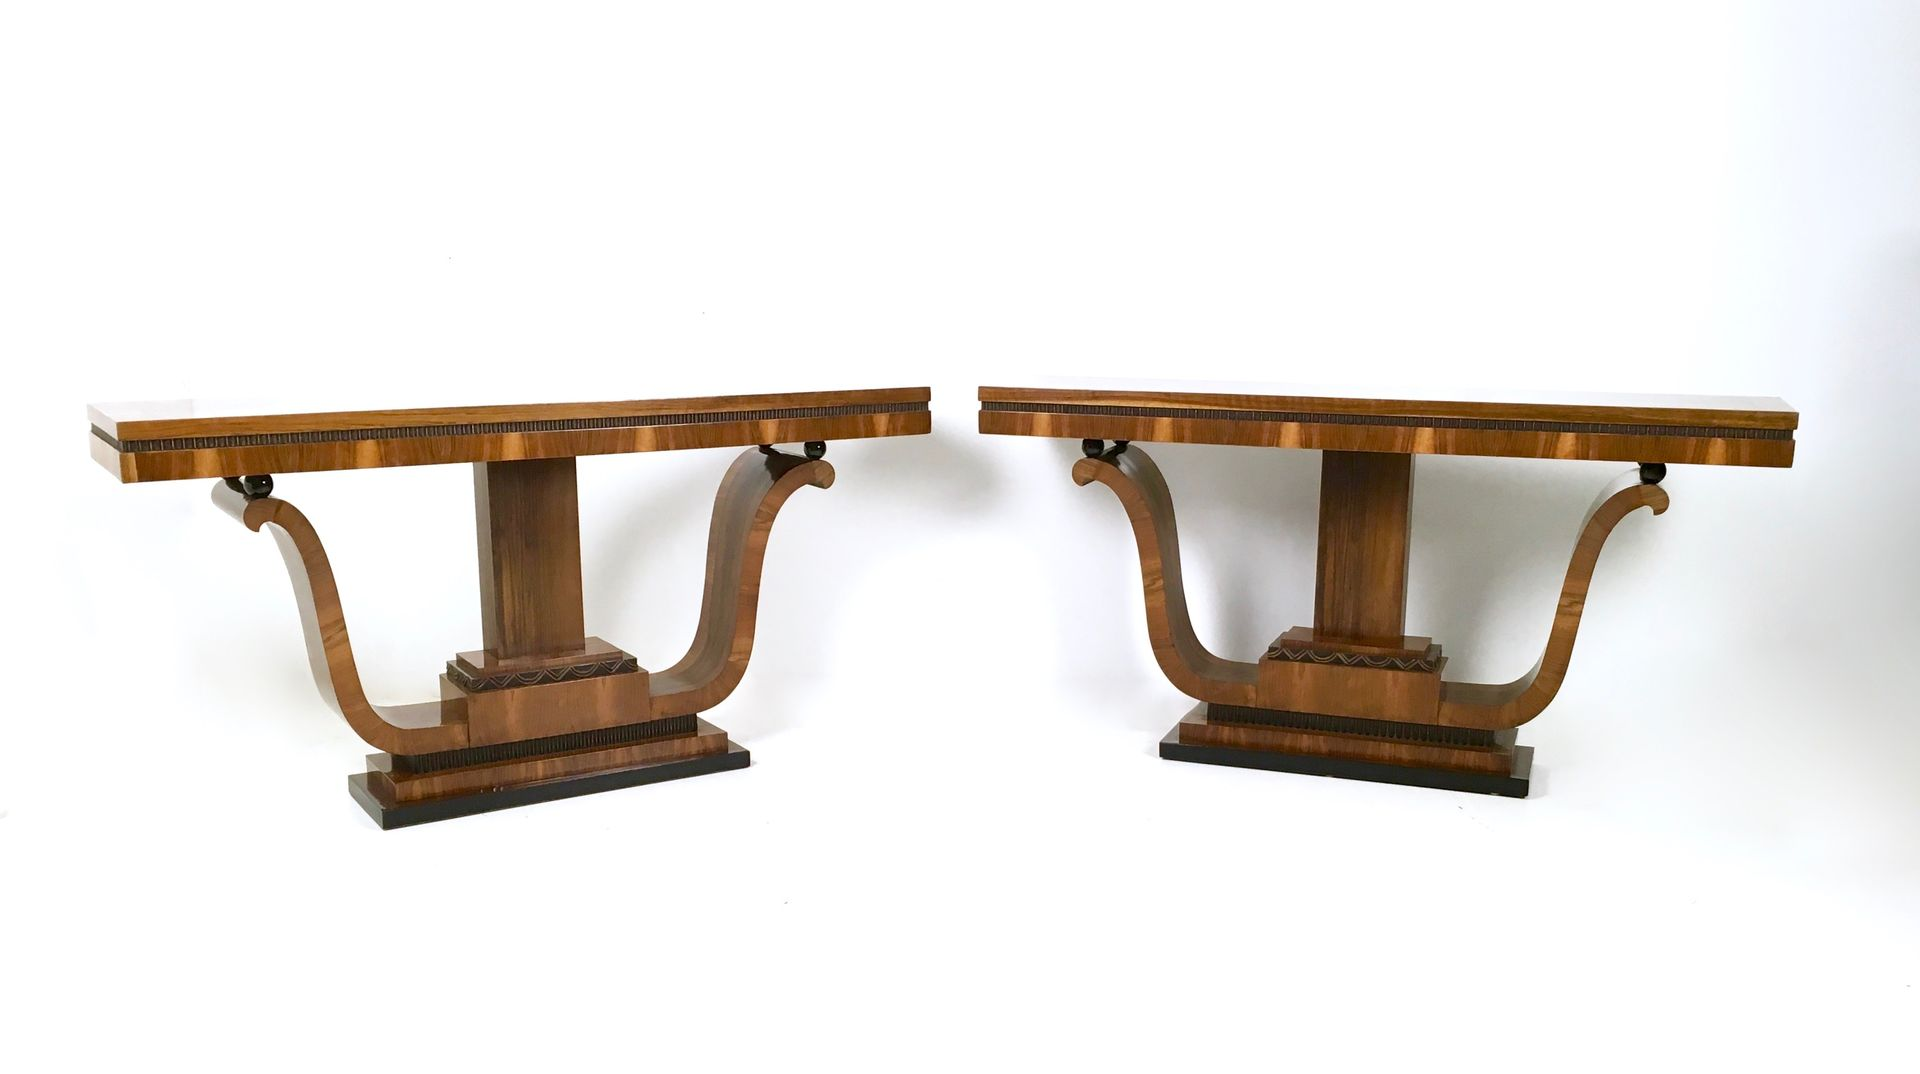 Vintage italian walnut and rosewood console tables 1940s set of vintage italian walnut and rosewood console tables 1940s set of 2 geotapseo Choice Image